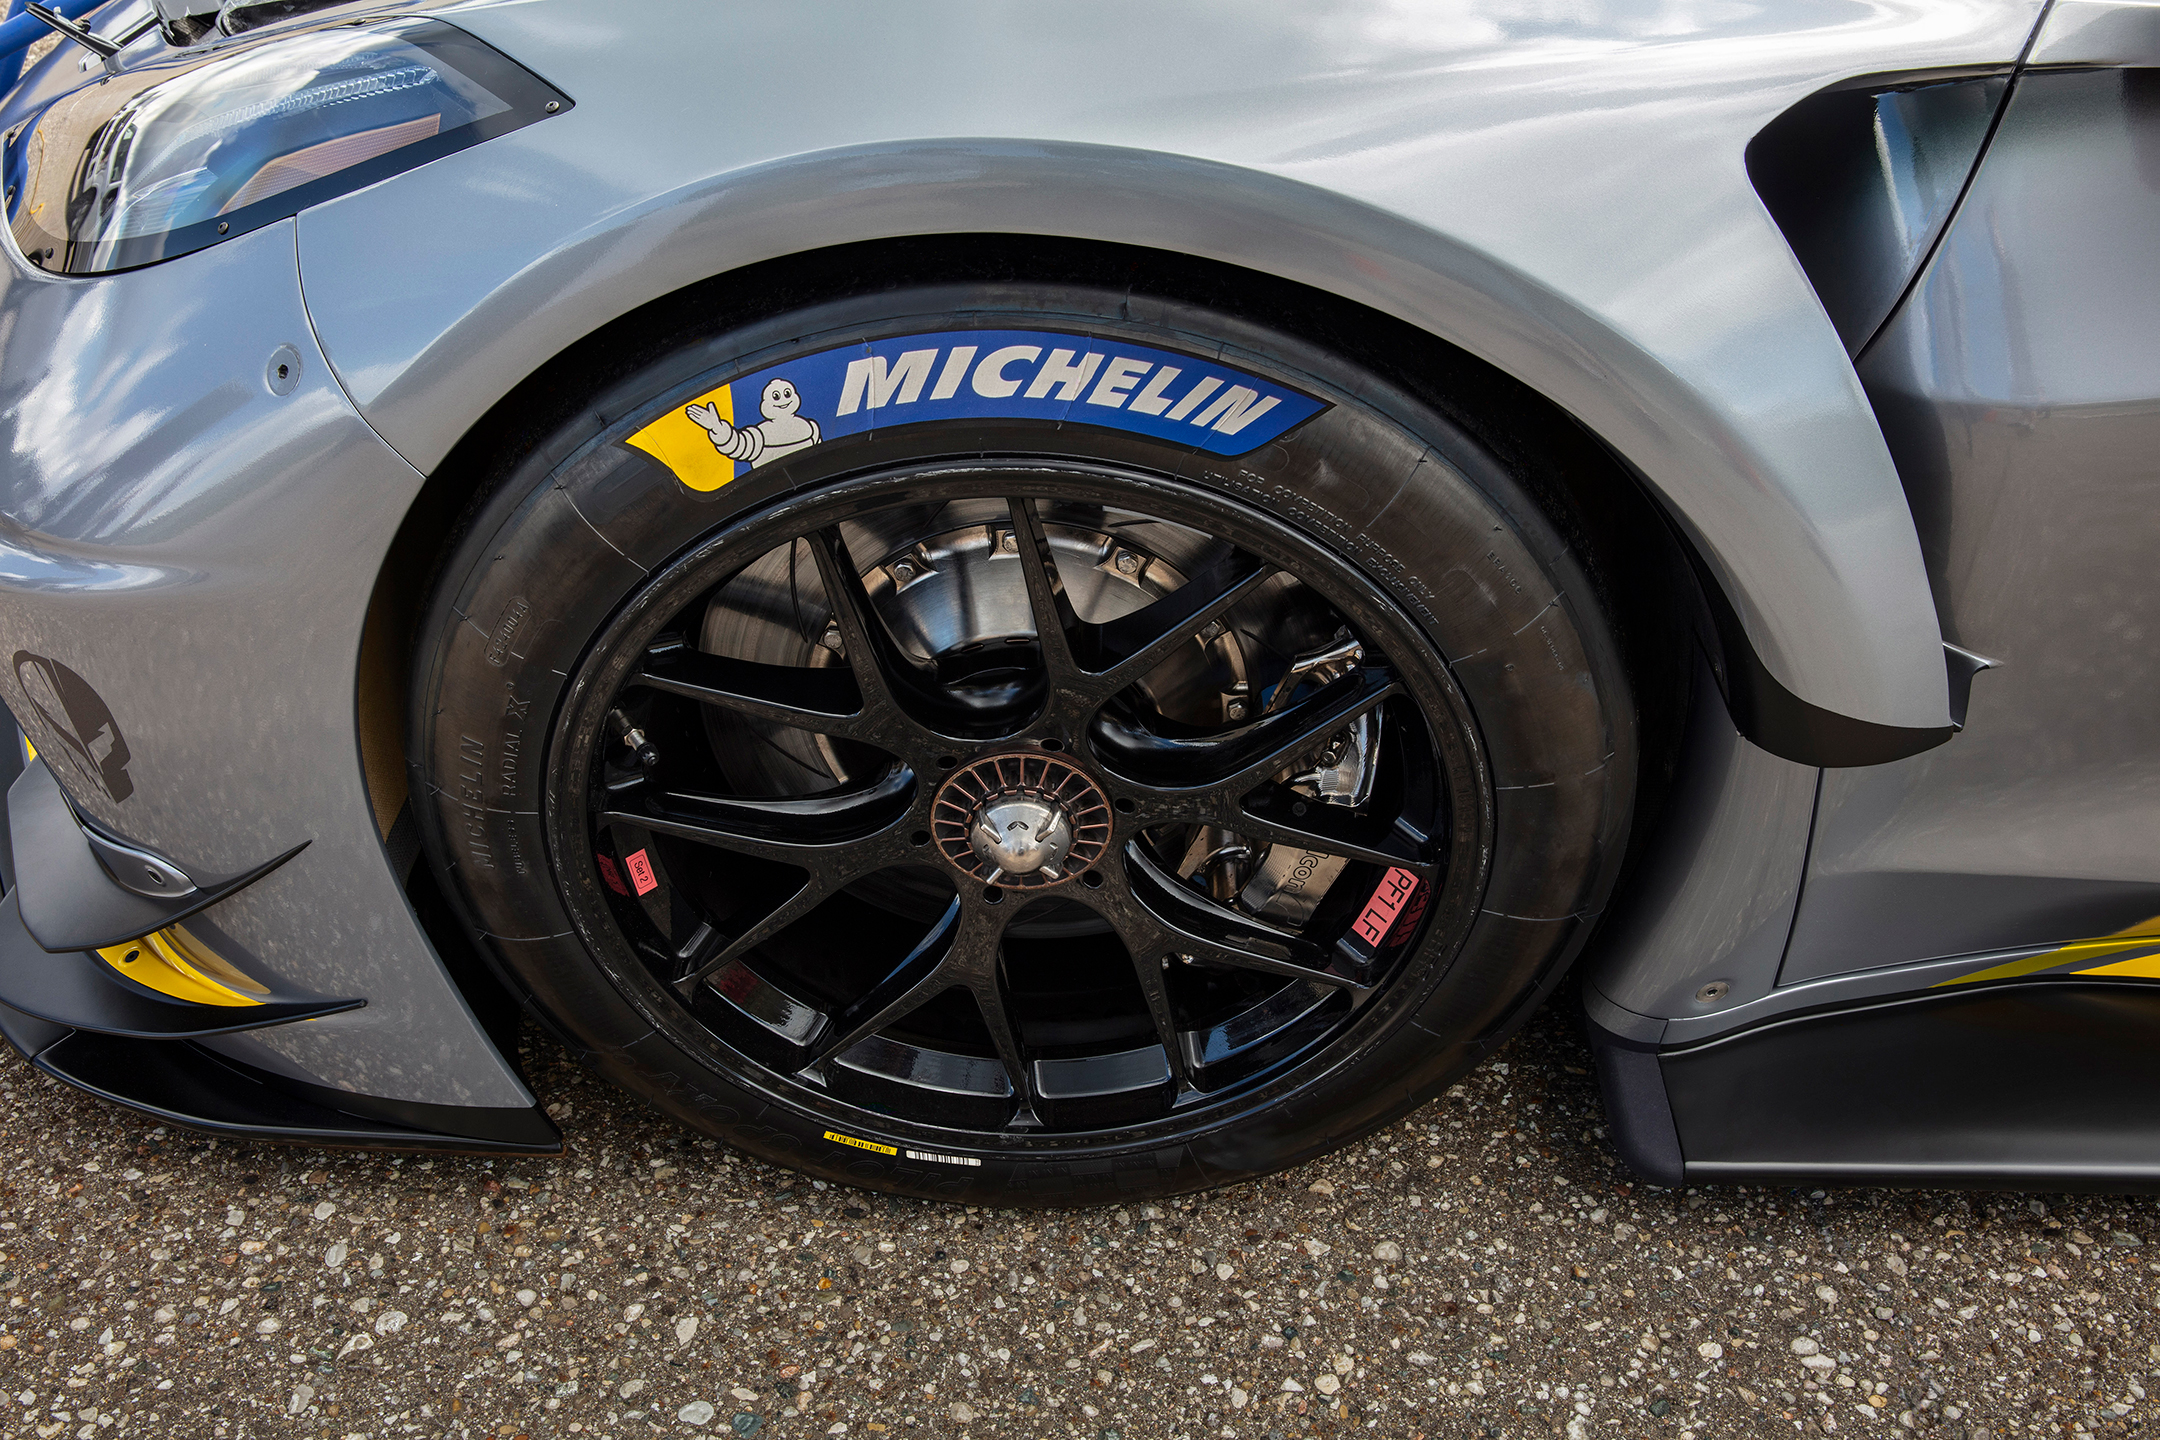 Chevrolet Corvette C8.R - 2019 - wheel / jante - top view - Michelin Pilot Sport GT competition - tires / pneus